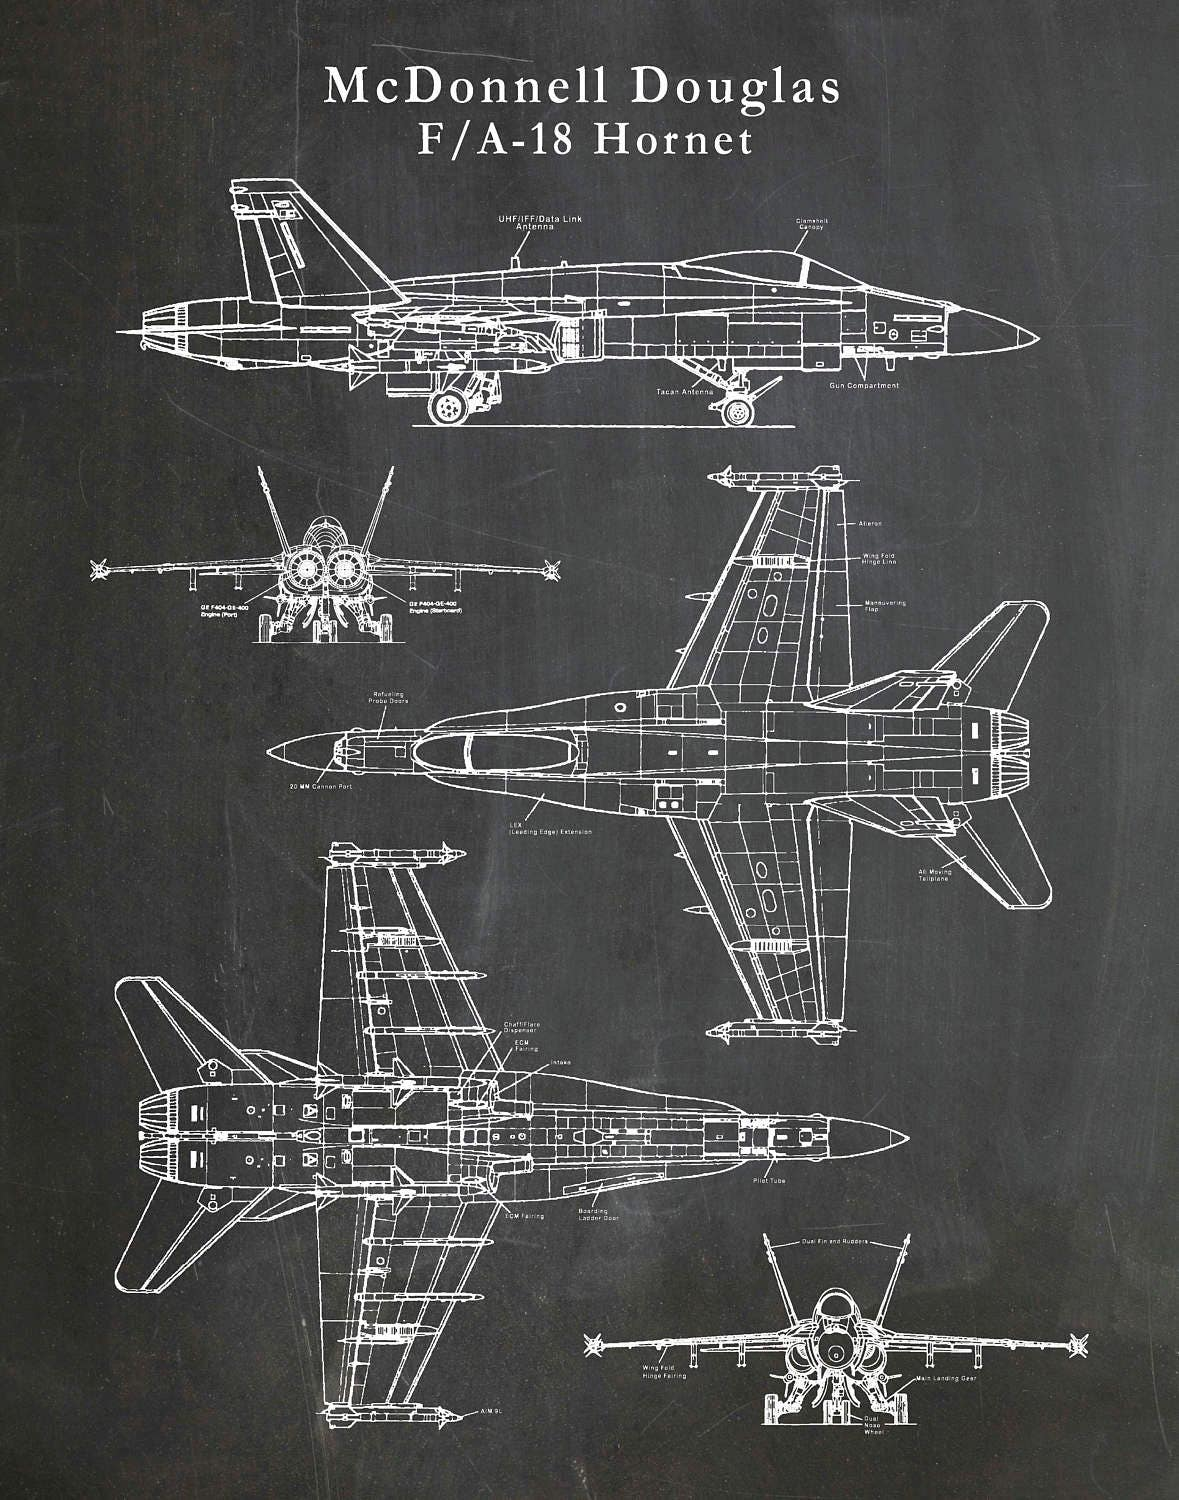 F18 Jet Engine Diagram Wiring Data Oreo Of F 18 Hornet Patent Drawing Print Bomber Plane Mcdonnell Douglas Blue